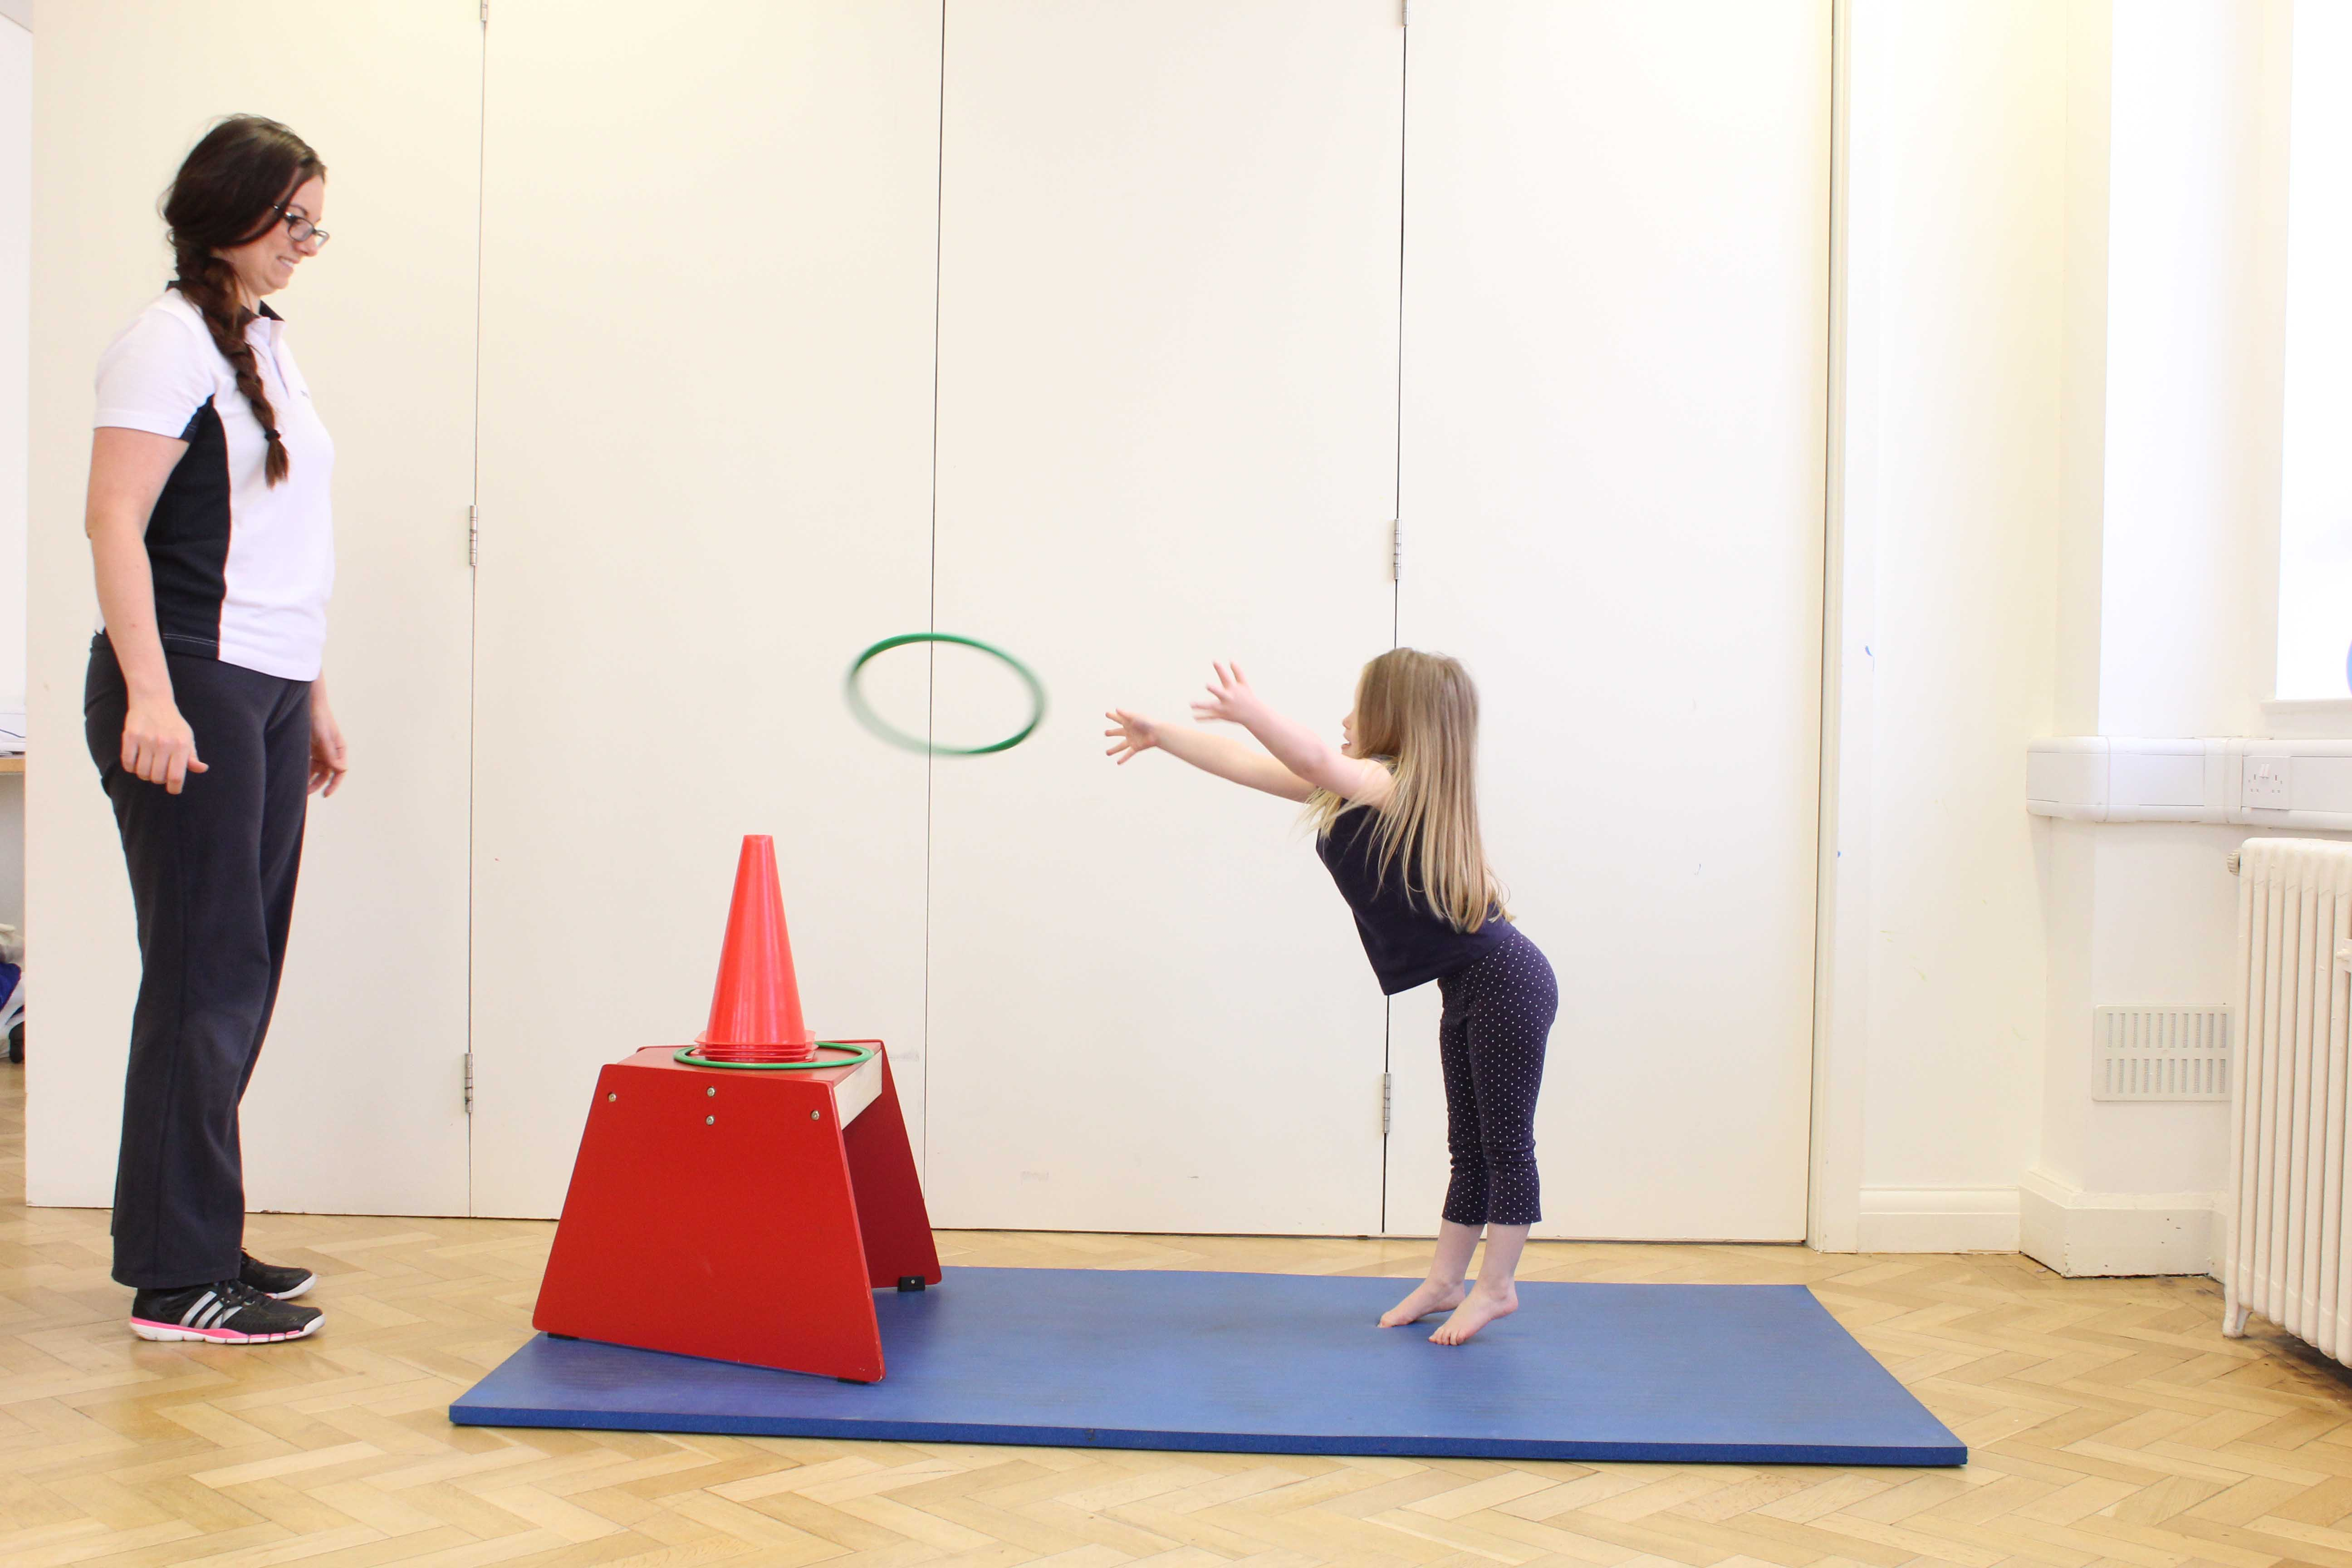 Functional mobility exercises assisted by an experienced paediatric physiotherapist